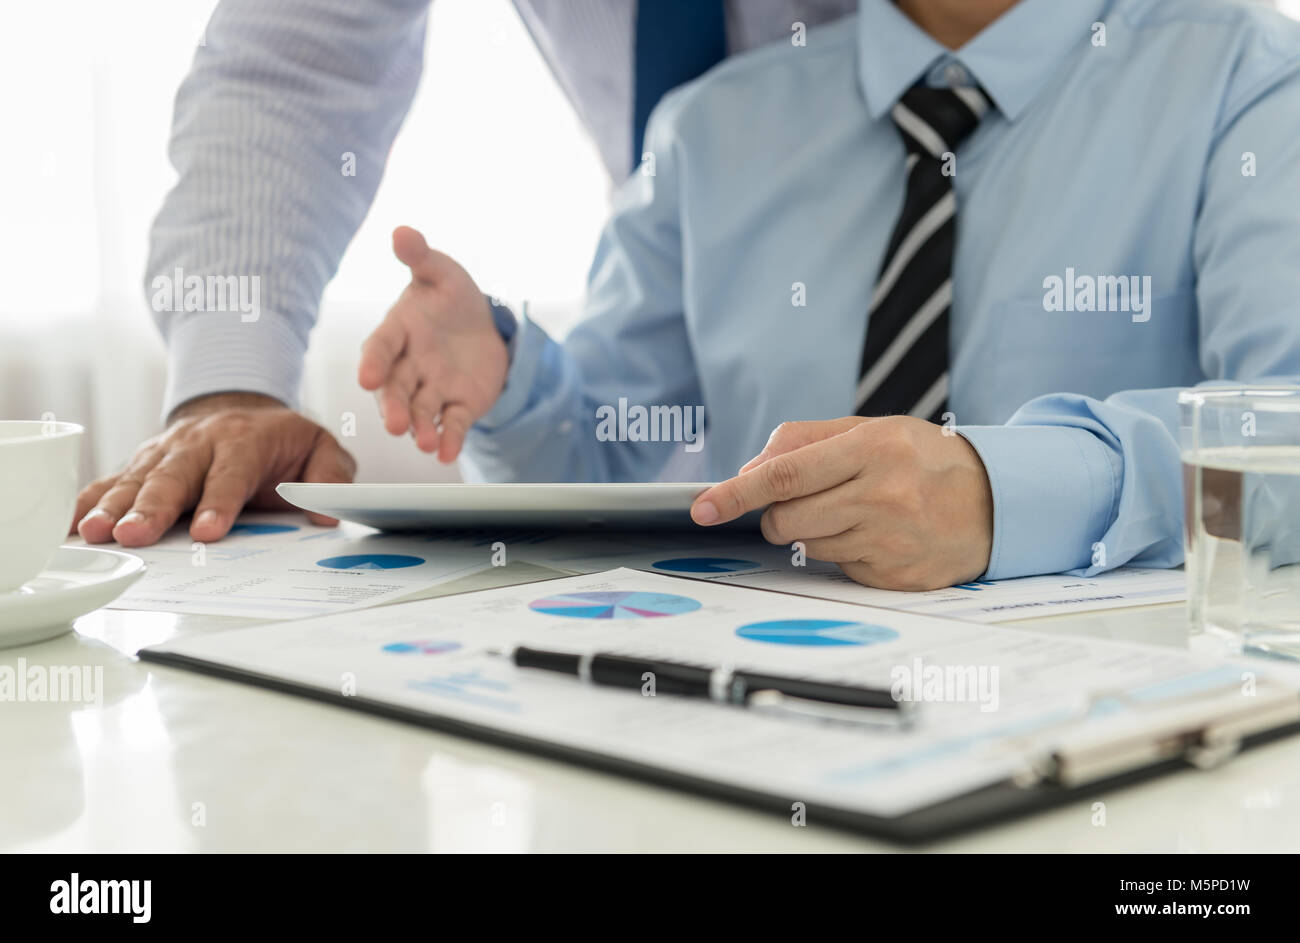 Marketing staff are analyzing the data to business planning. - Stock Image